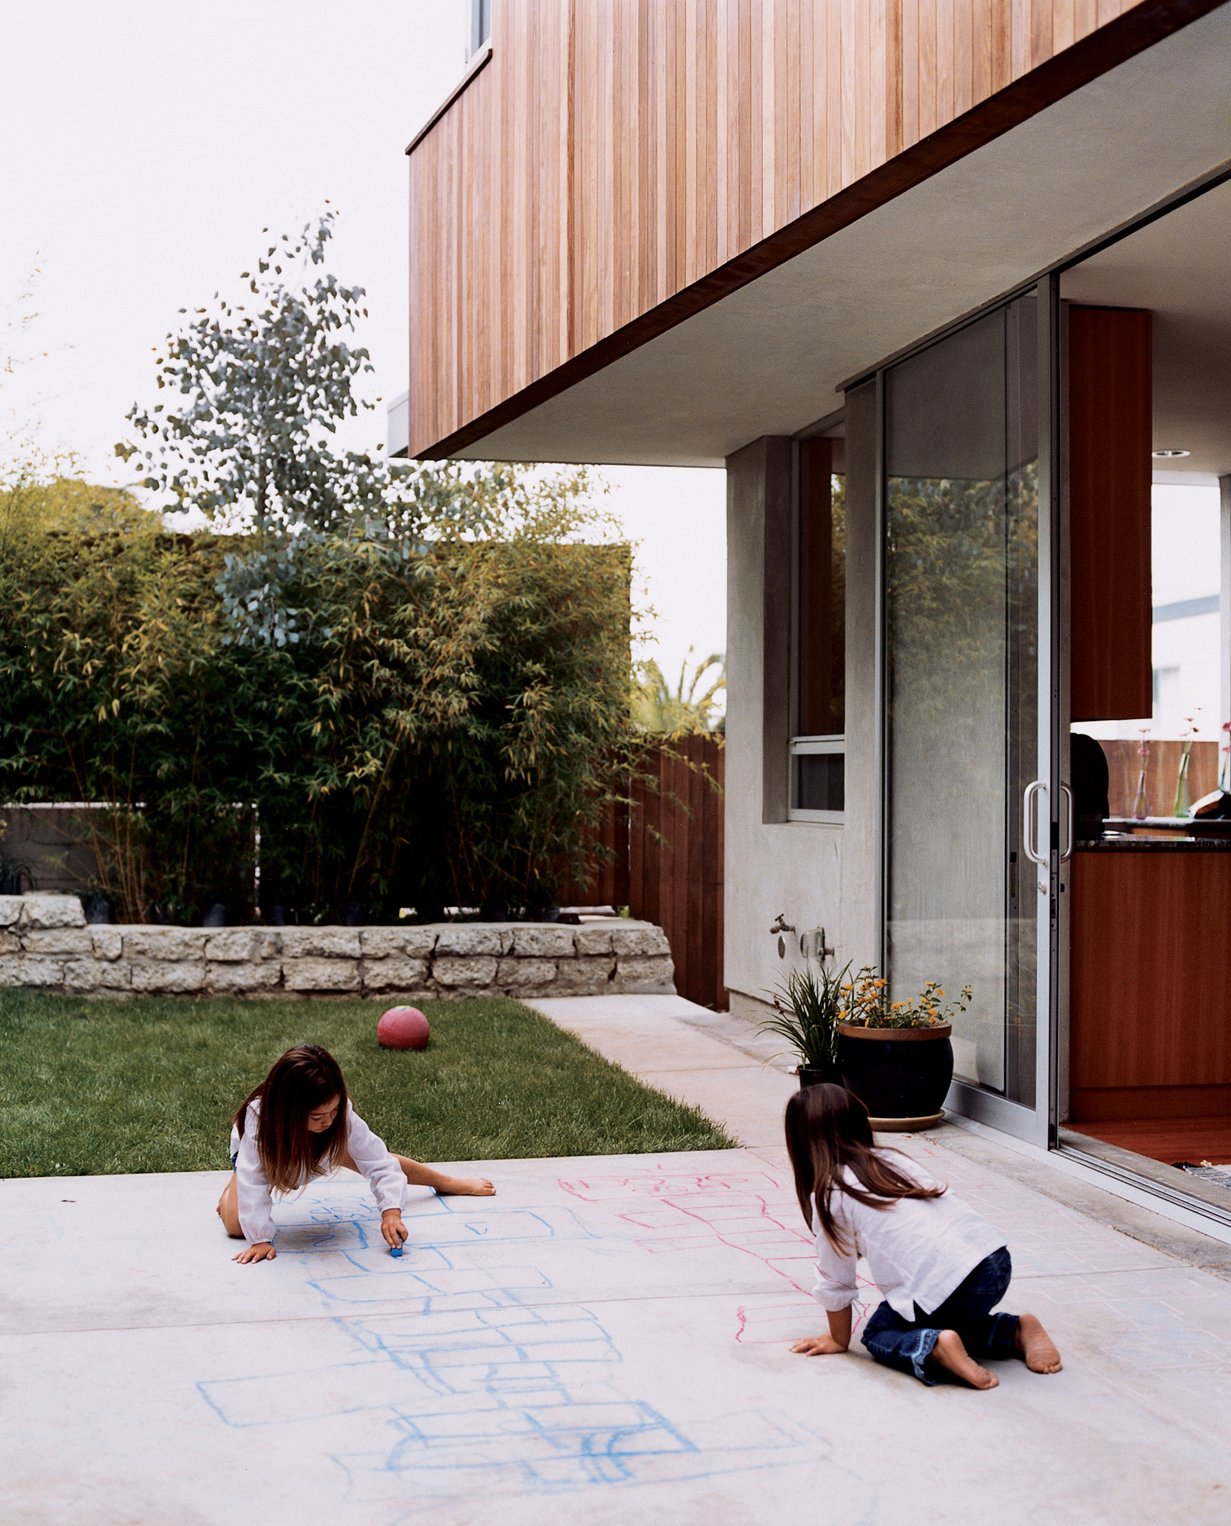 """Outdoor, Grass, Back Yard, Concrete Patio, Porch, Deck, and Large Patio, Porch, Deck Kalia and Olivia enjoying the outdoor space. Kalia's favorite part of the house? In her own words, """"I like the backyard where we play soccer, hopscotch, and jump rope and draw and have picnics."""" 'Nuff said.  Photo 13 of 13 in Two Houses Are Better Than One"""